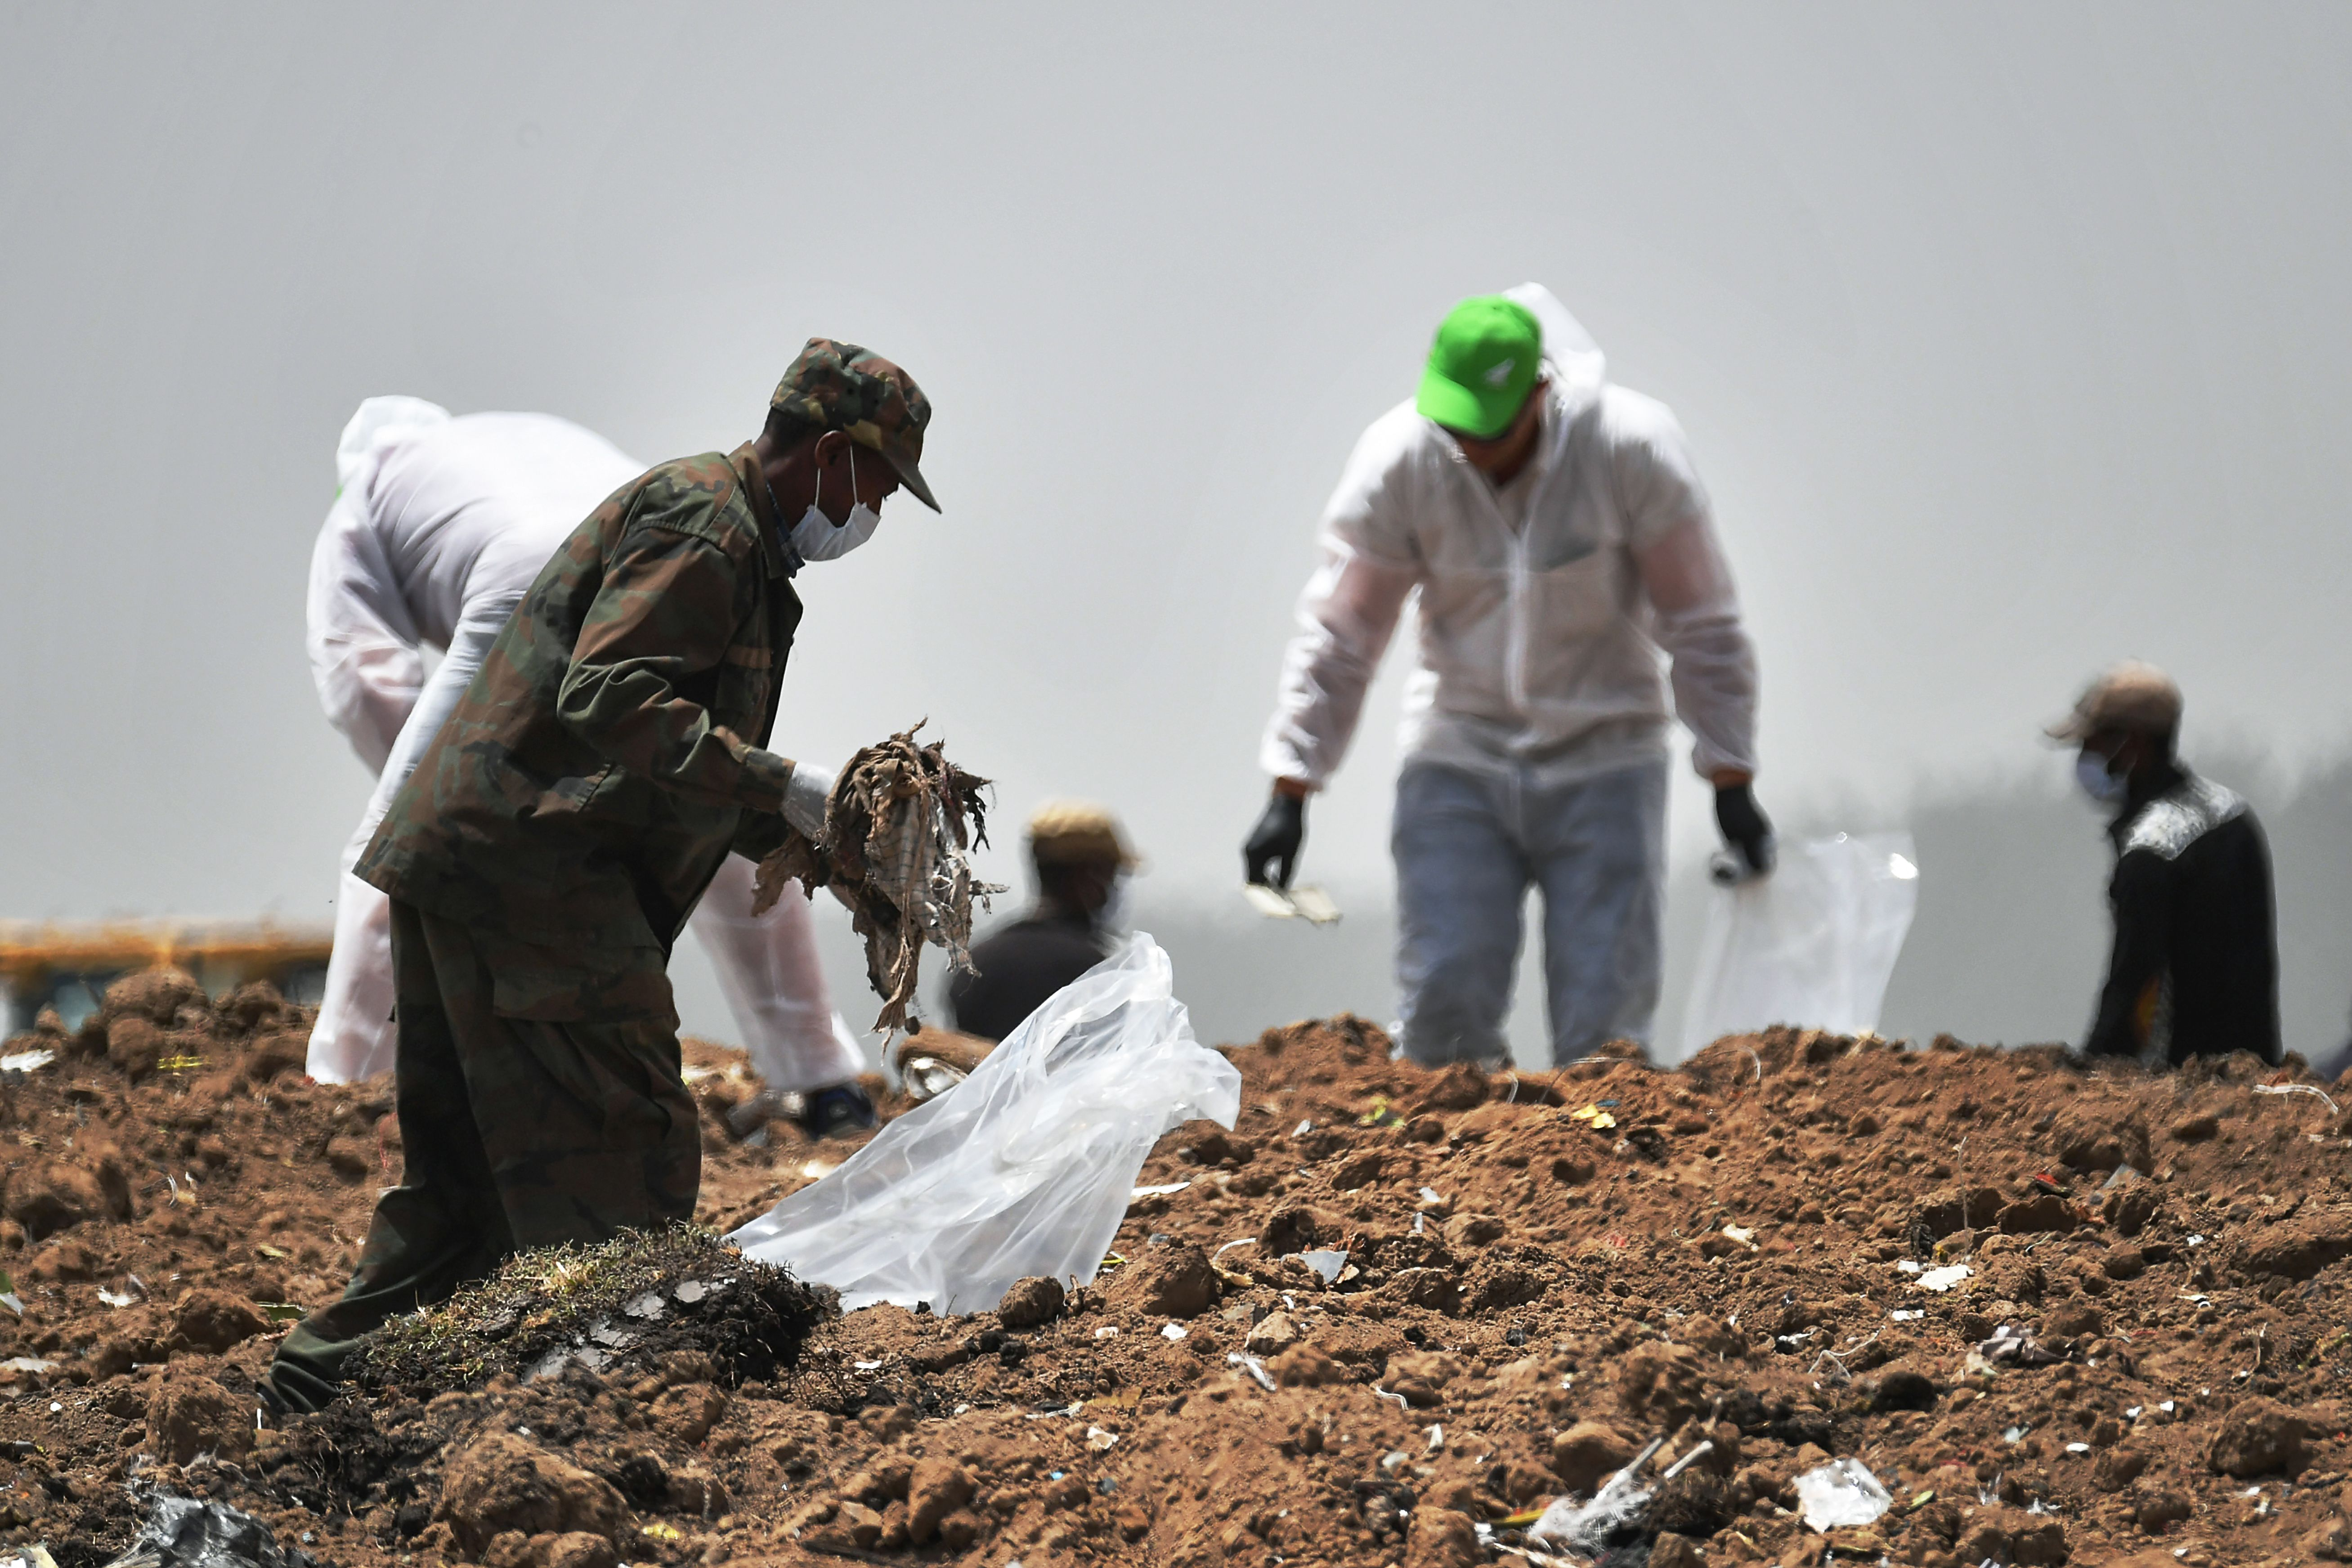 Forensics experts comb through the dirt for debris